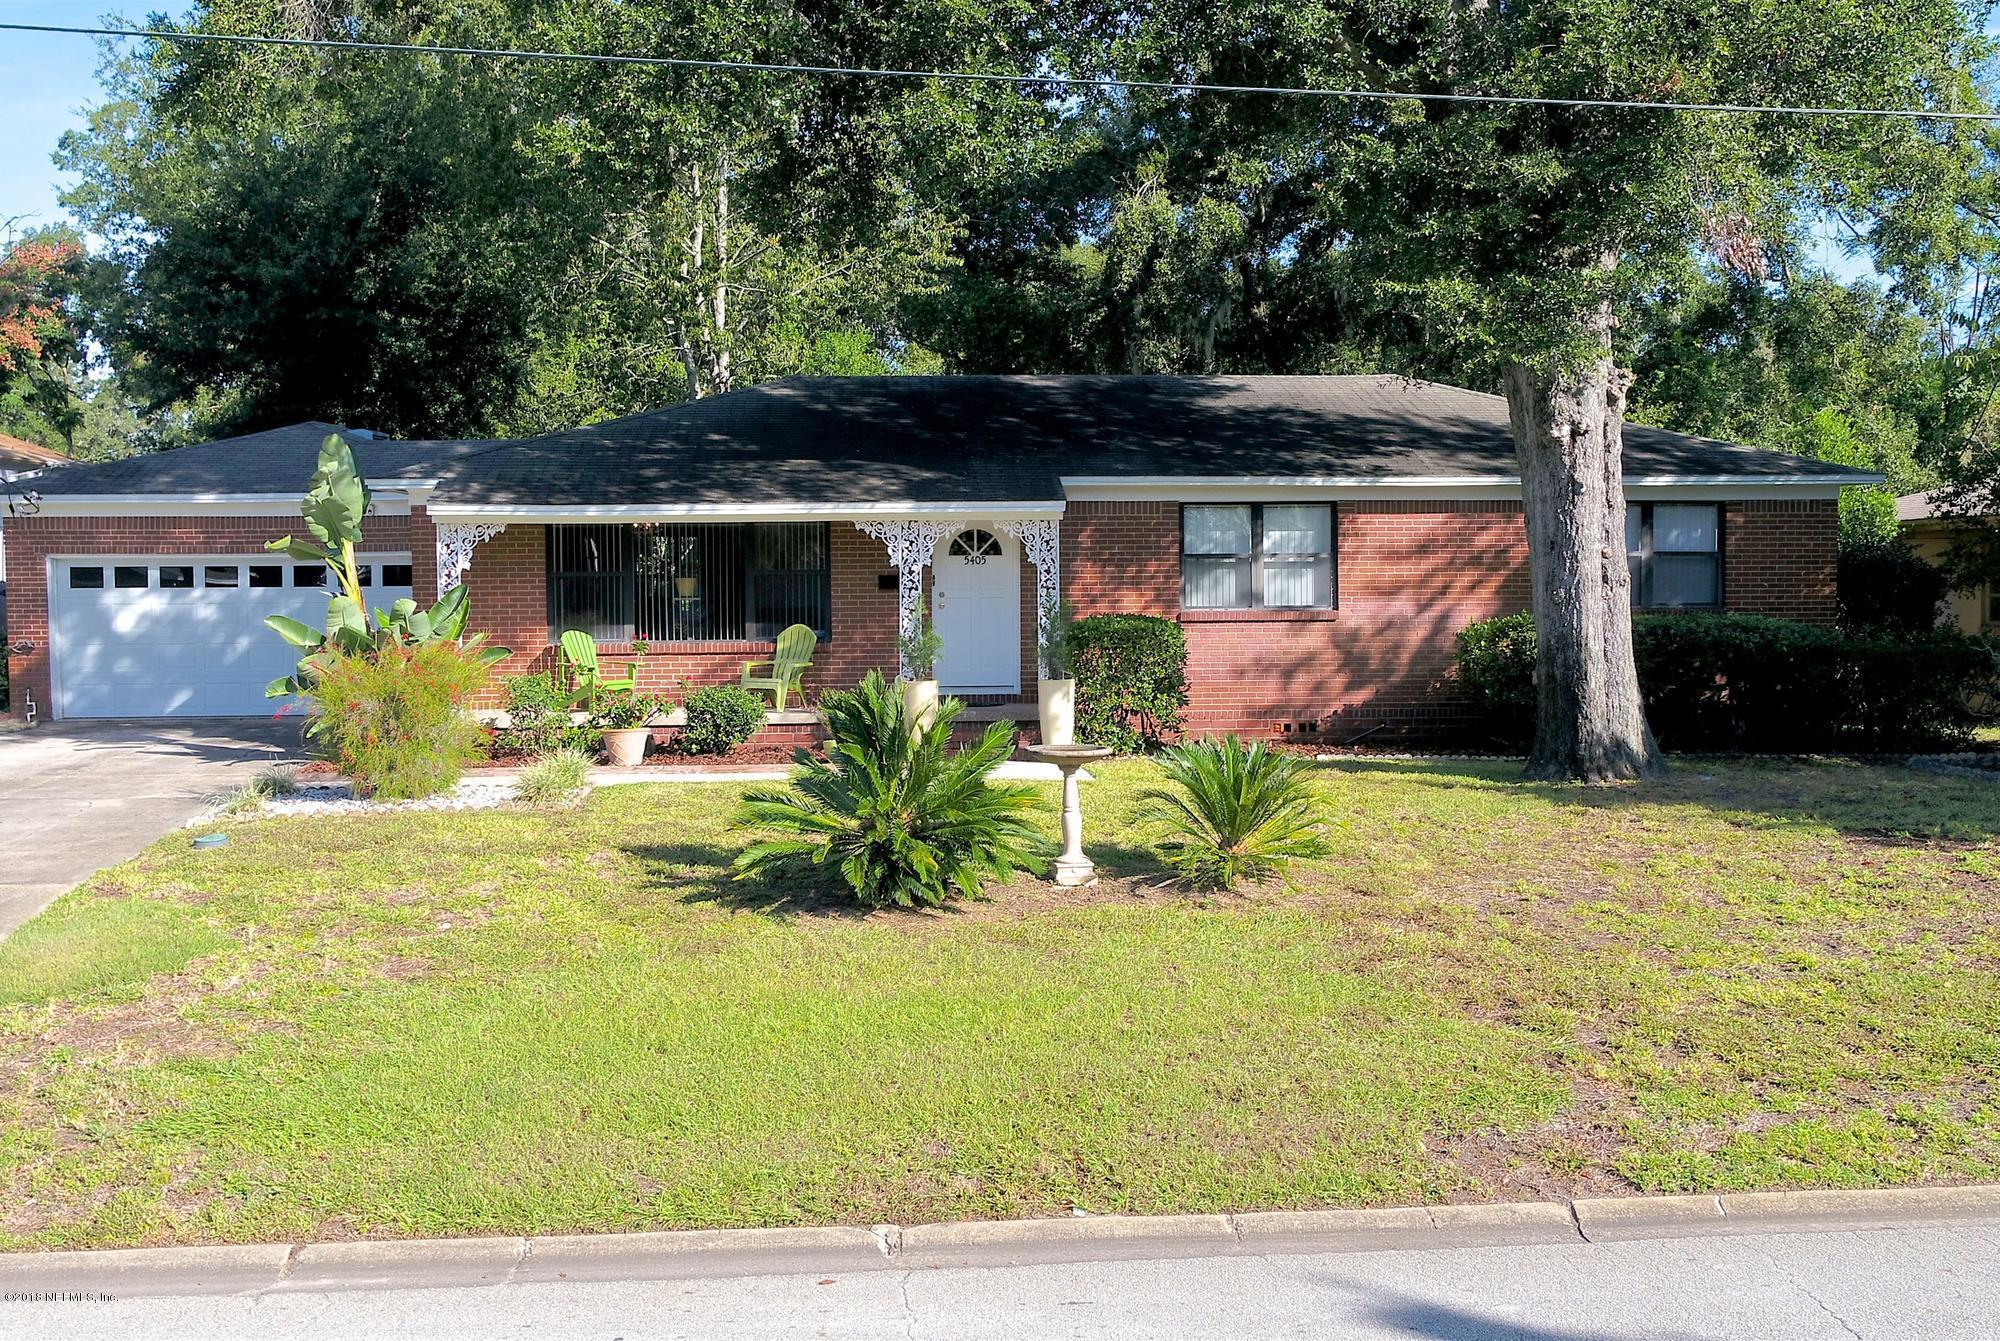 5405 SANTA ROSA, JACKSONVILLE, FLORIDA 32211, 3 Bedrooms Bedrooms, ,2 BathroomsBathrooms,Residential - single family,For sale,SANTA ROSA,965490